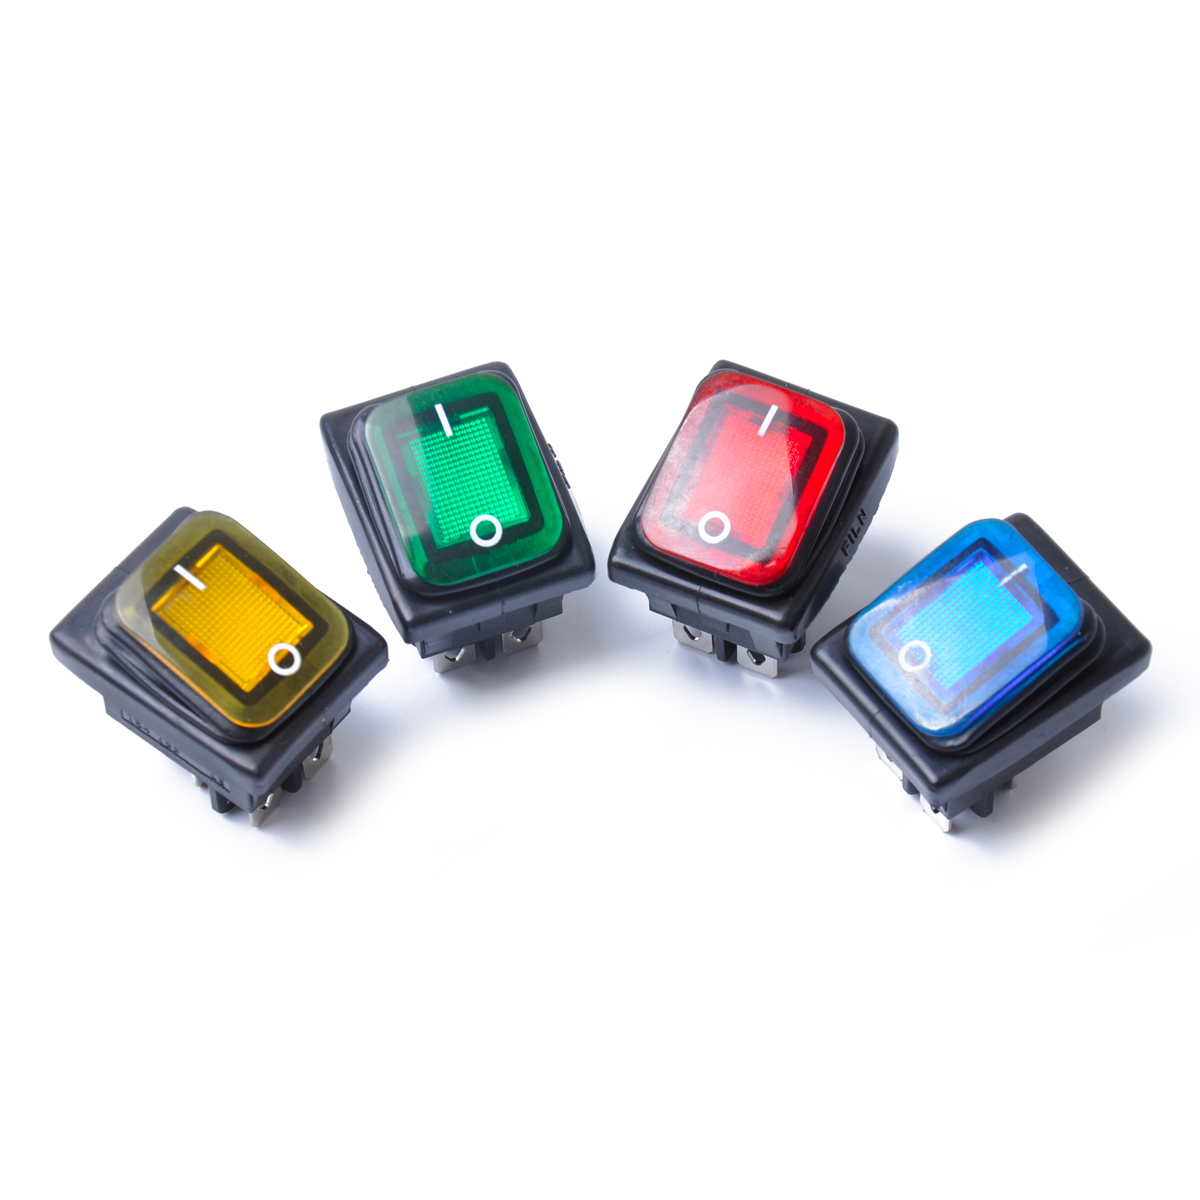 Automobiles & Motorcycles Marine Hardware Rocker Toggle Switch On-off-on 4 Pins 12v Dc Car Boat Automobiles Waterproof Led Latching Switches